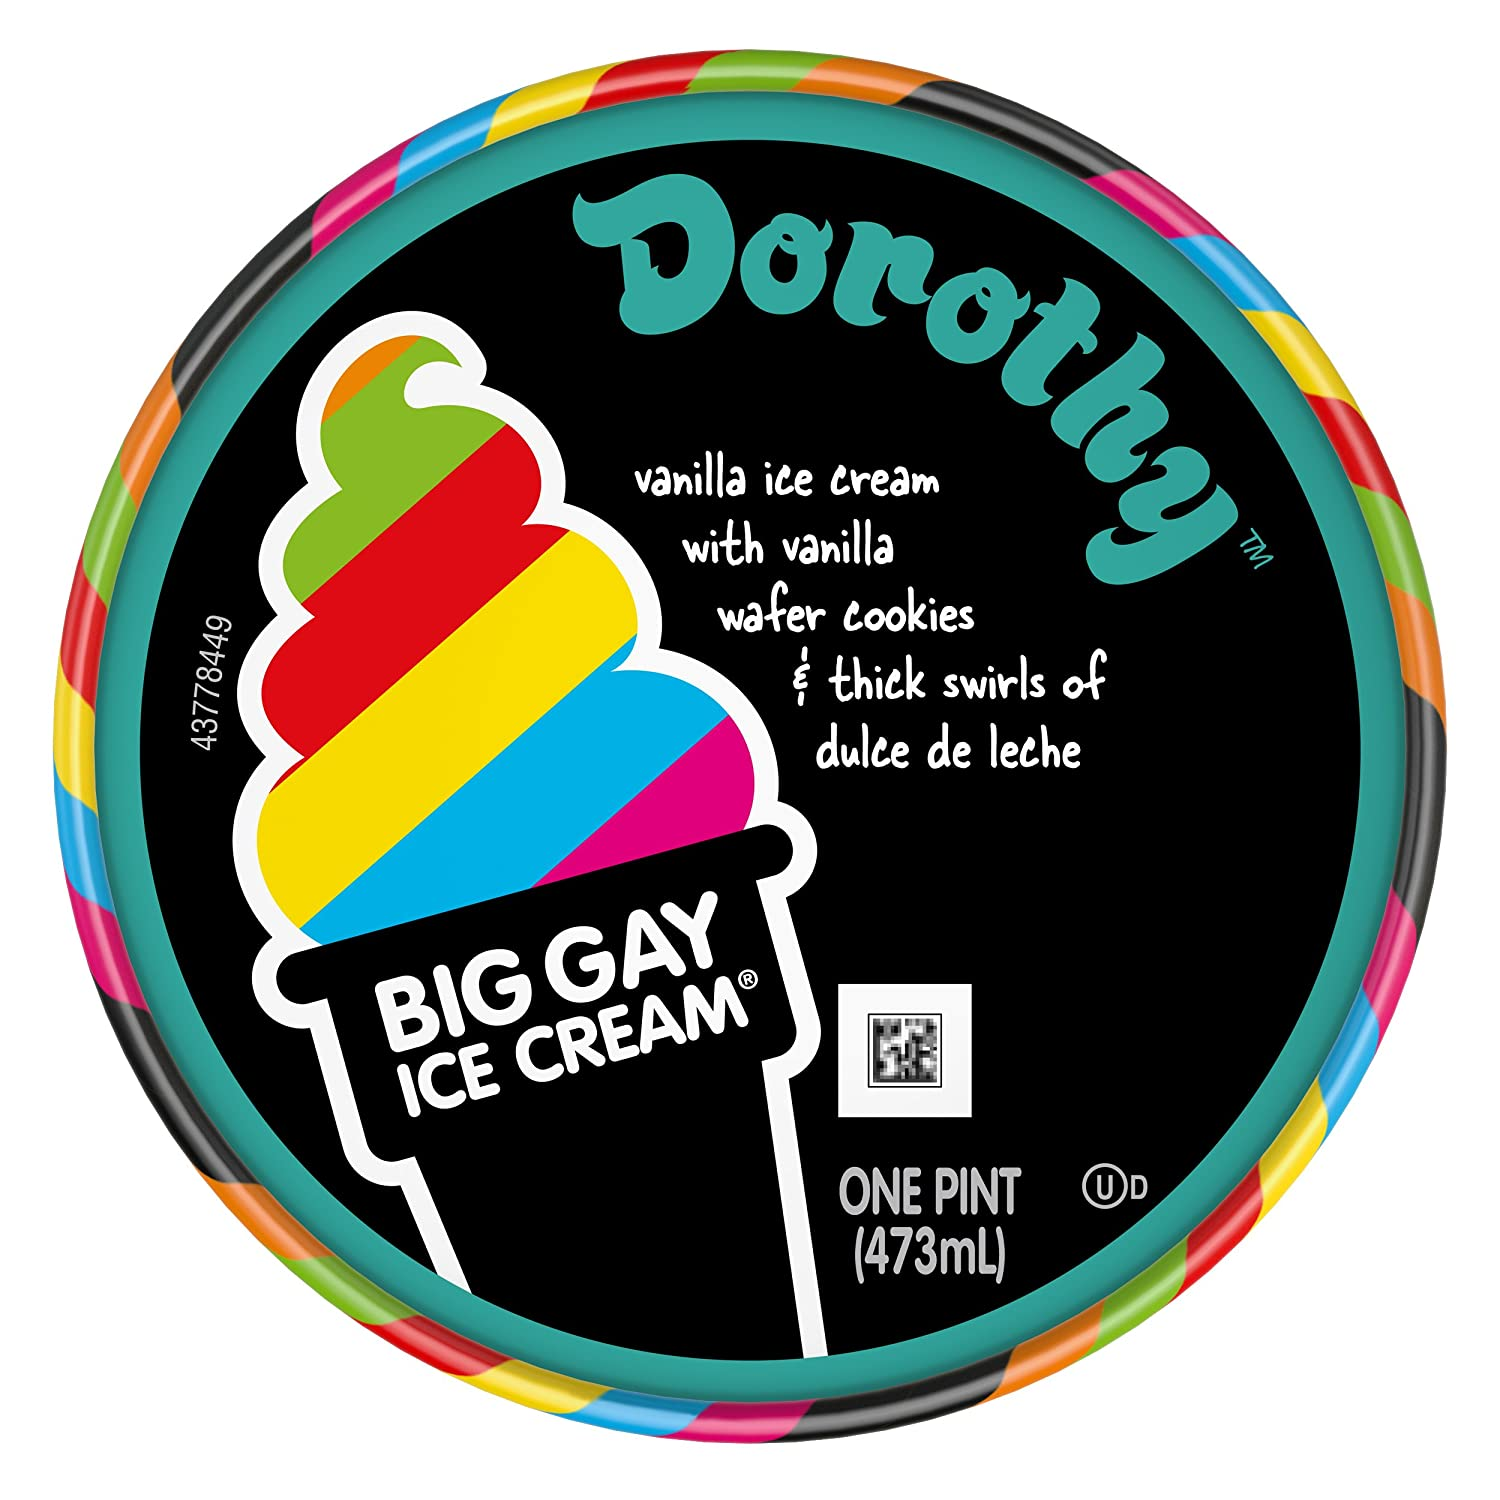 Big Gay Ice Cream Dorothy, 16 oz (Frozen): Amazon.com: Grocery & Gourmet Food